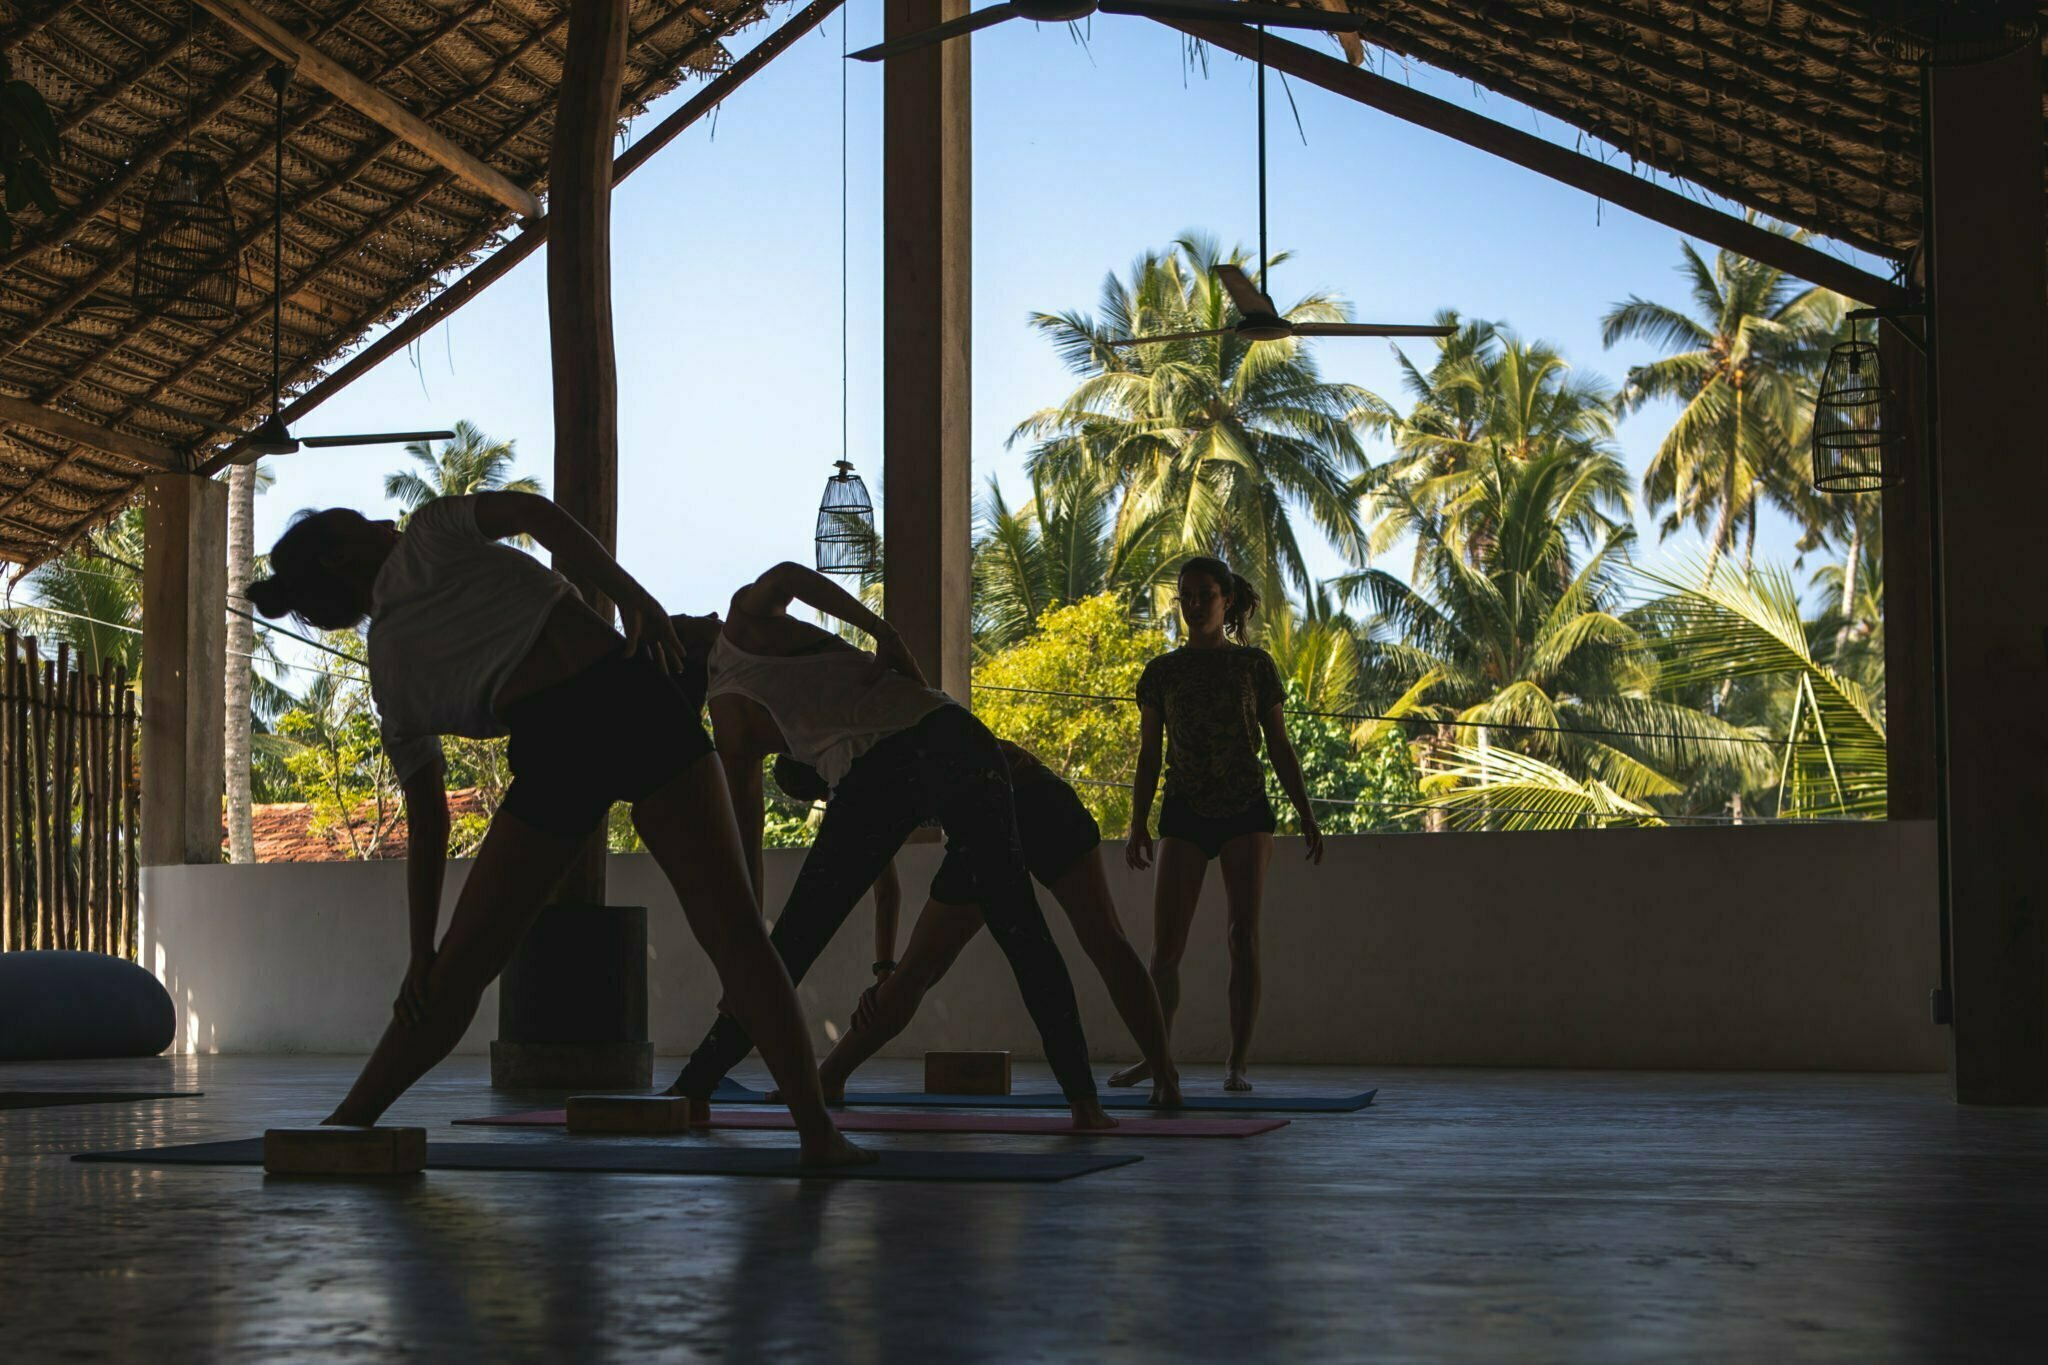 200hr-yoga-teacher-training-sri lanka-stefancamilleriyoga30